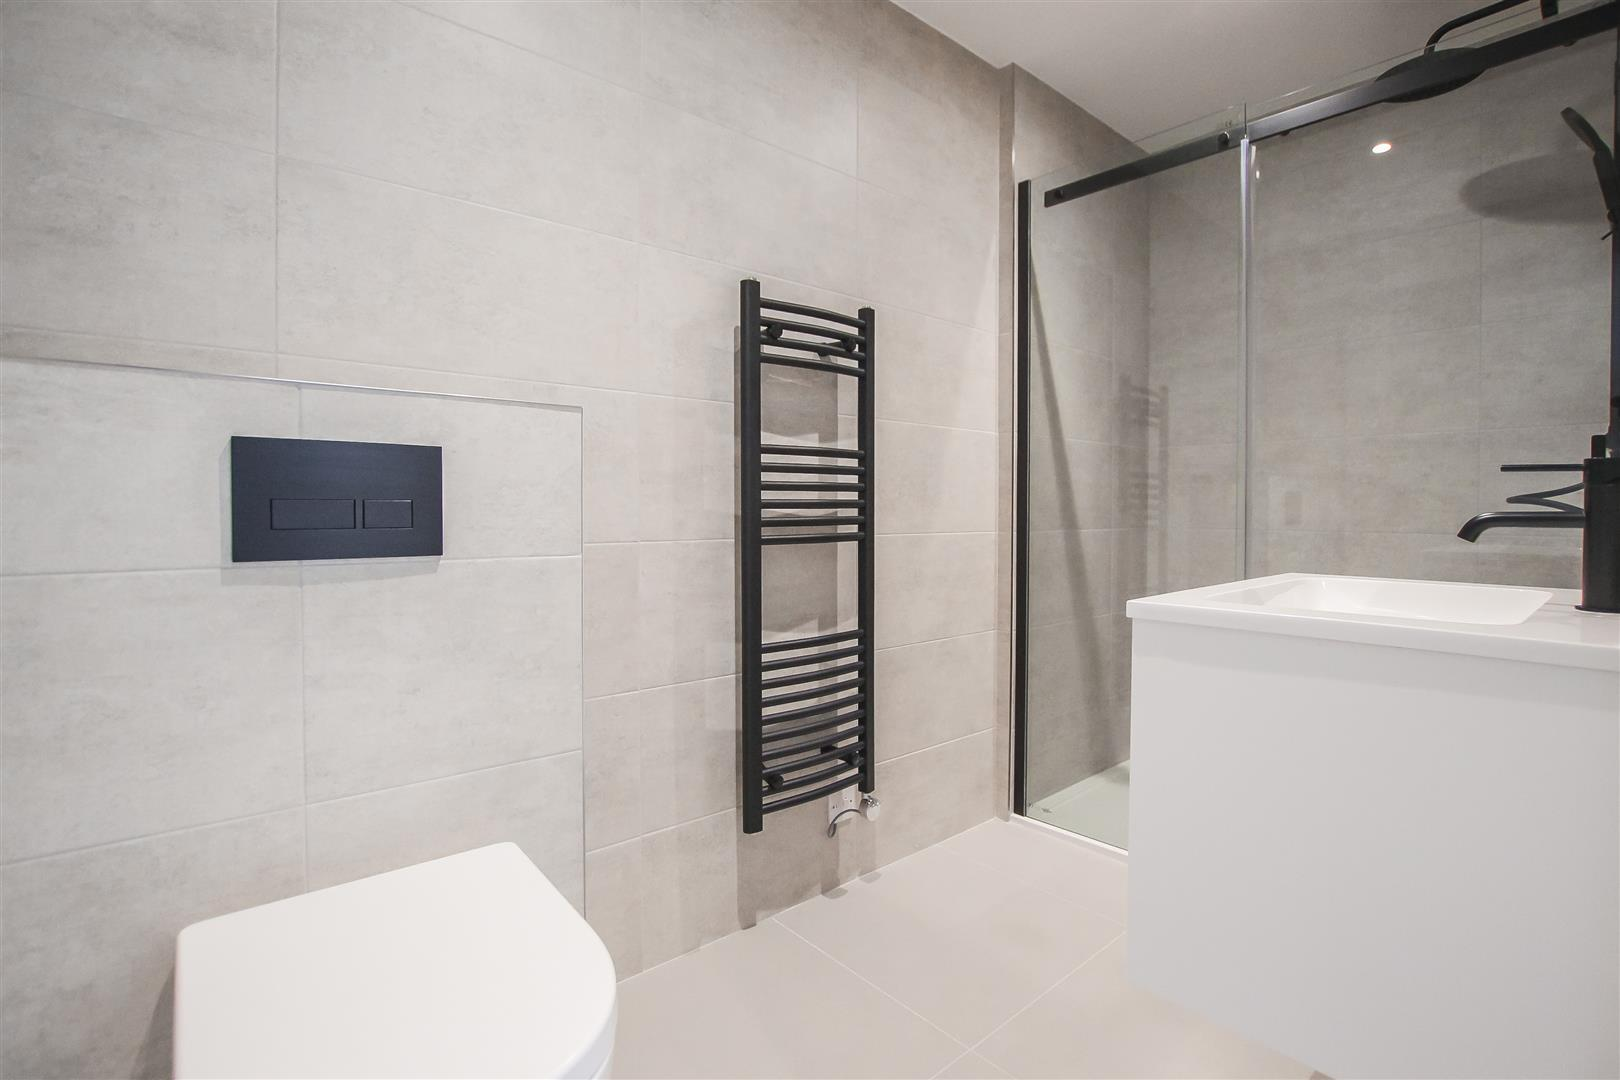 2 Bedroom Apartment For Sale - Image 21